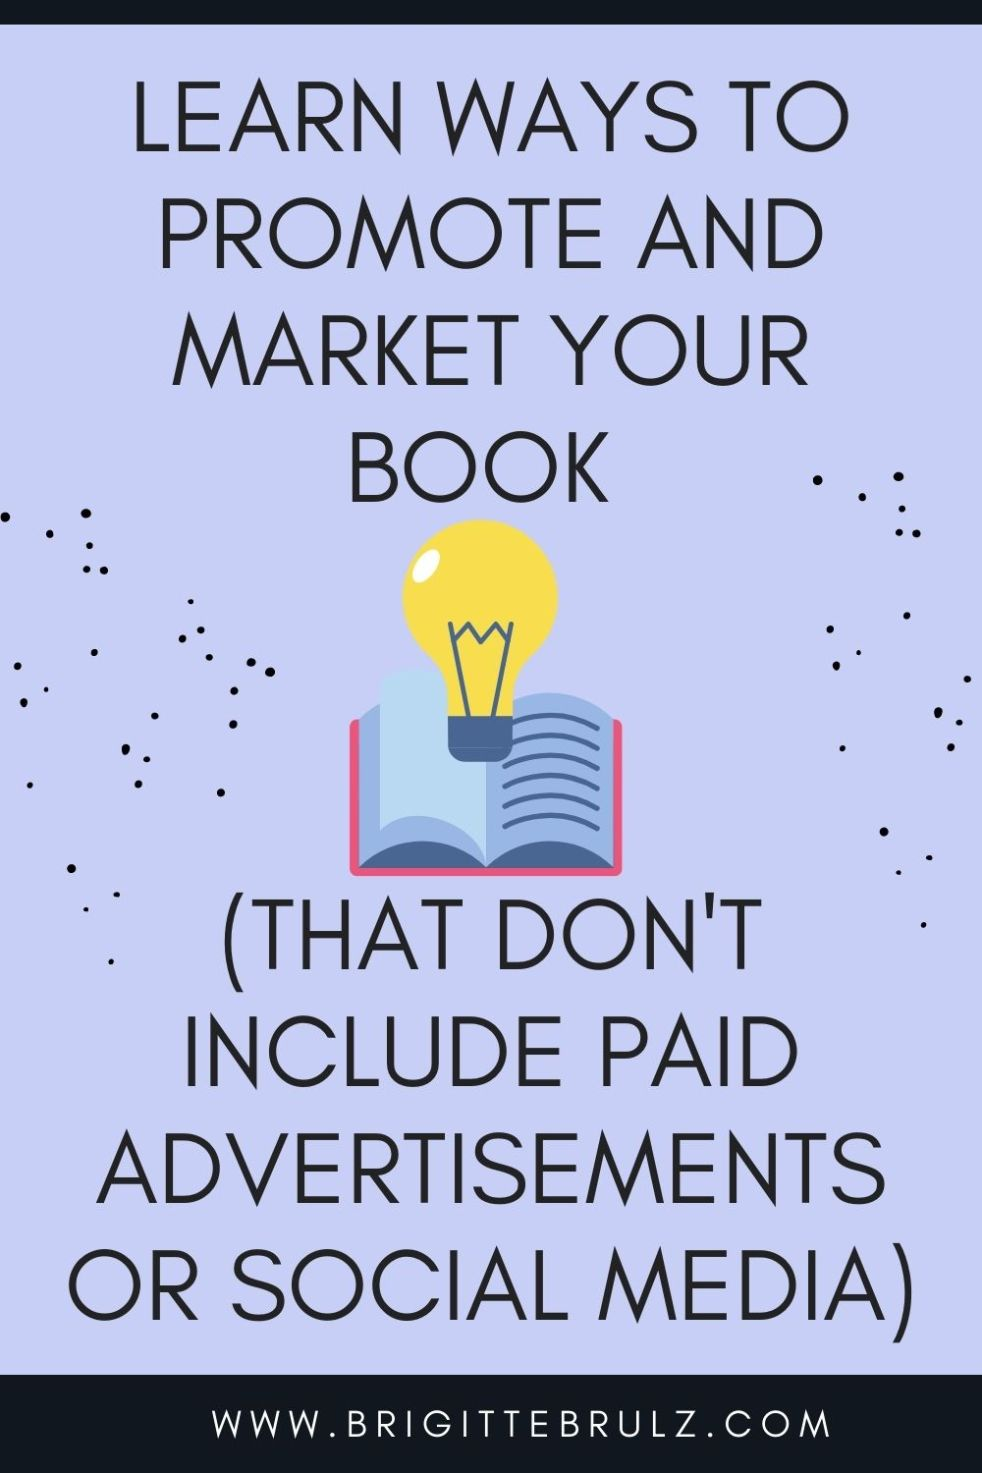 Promote and Market Your Book